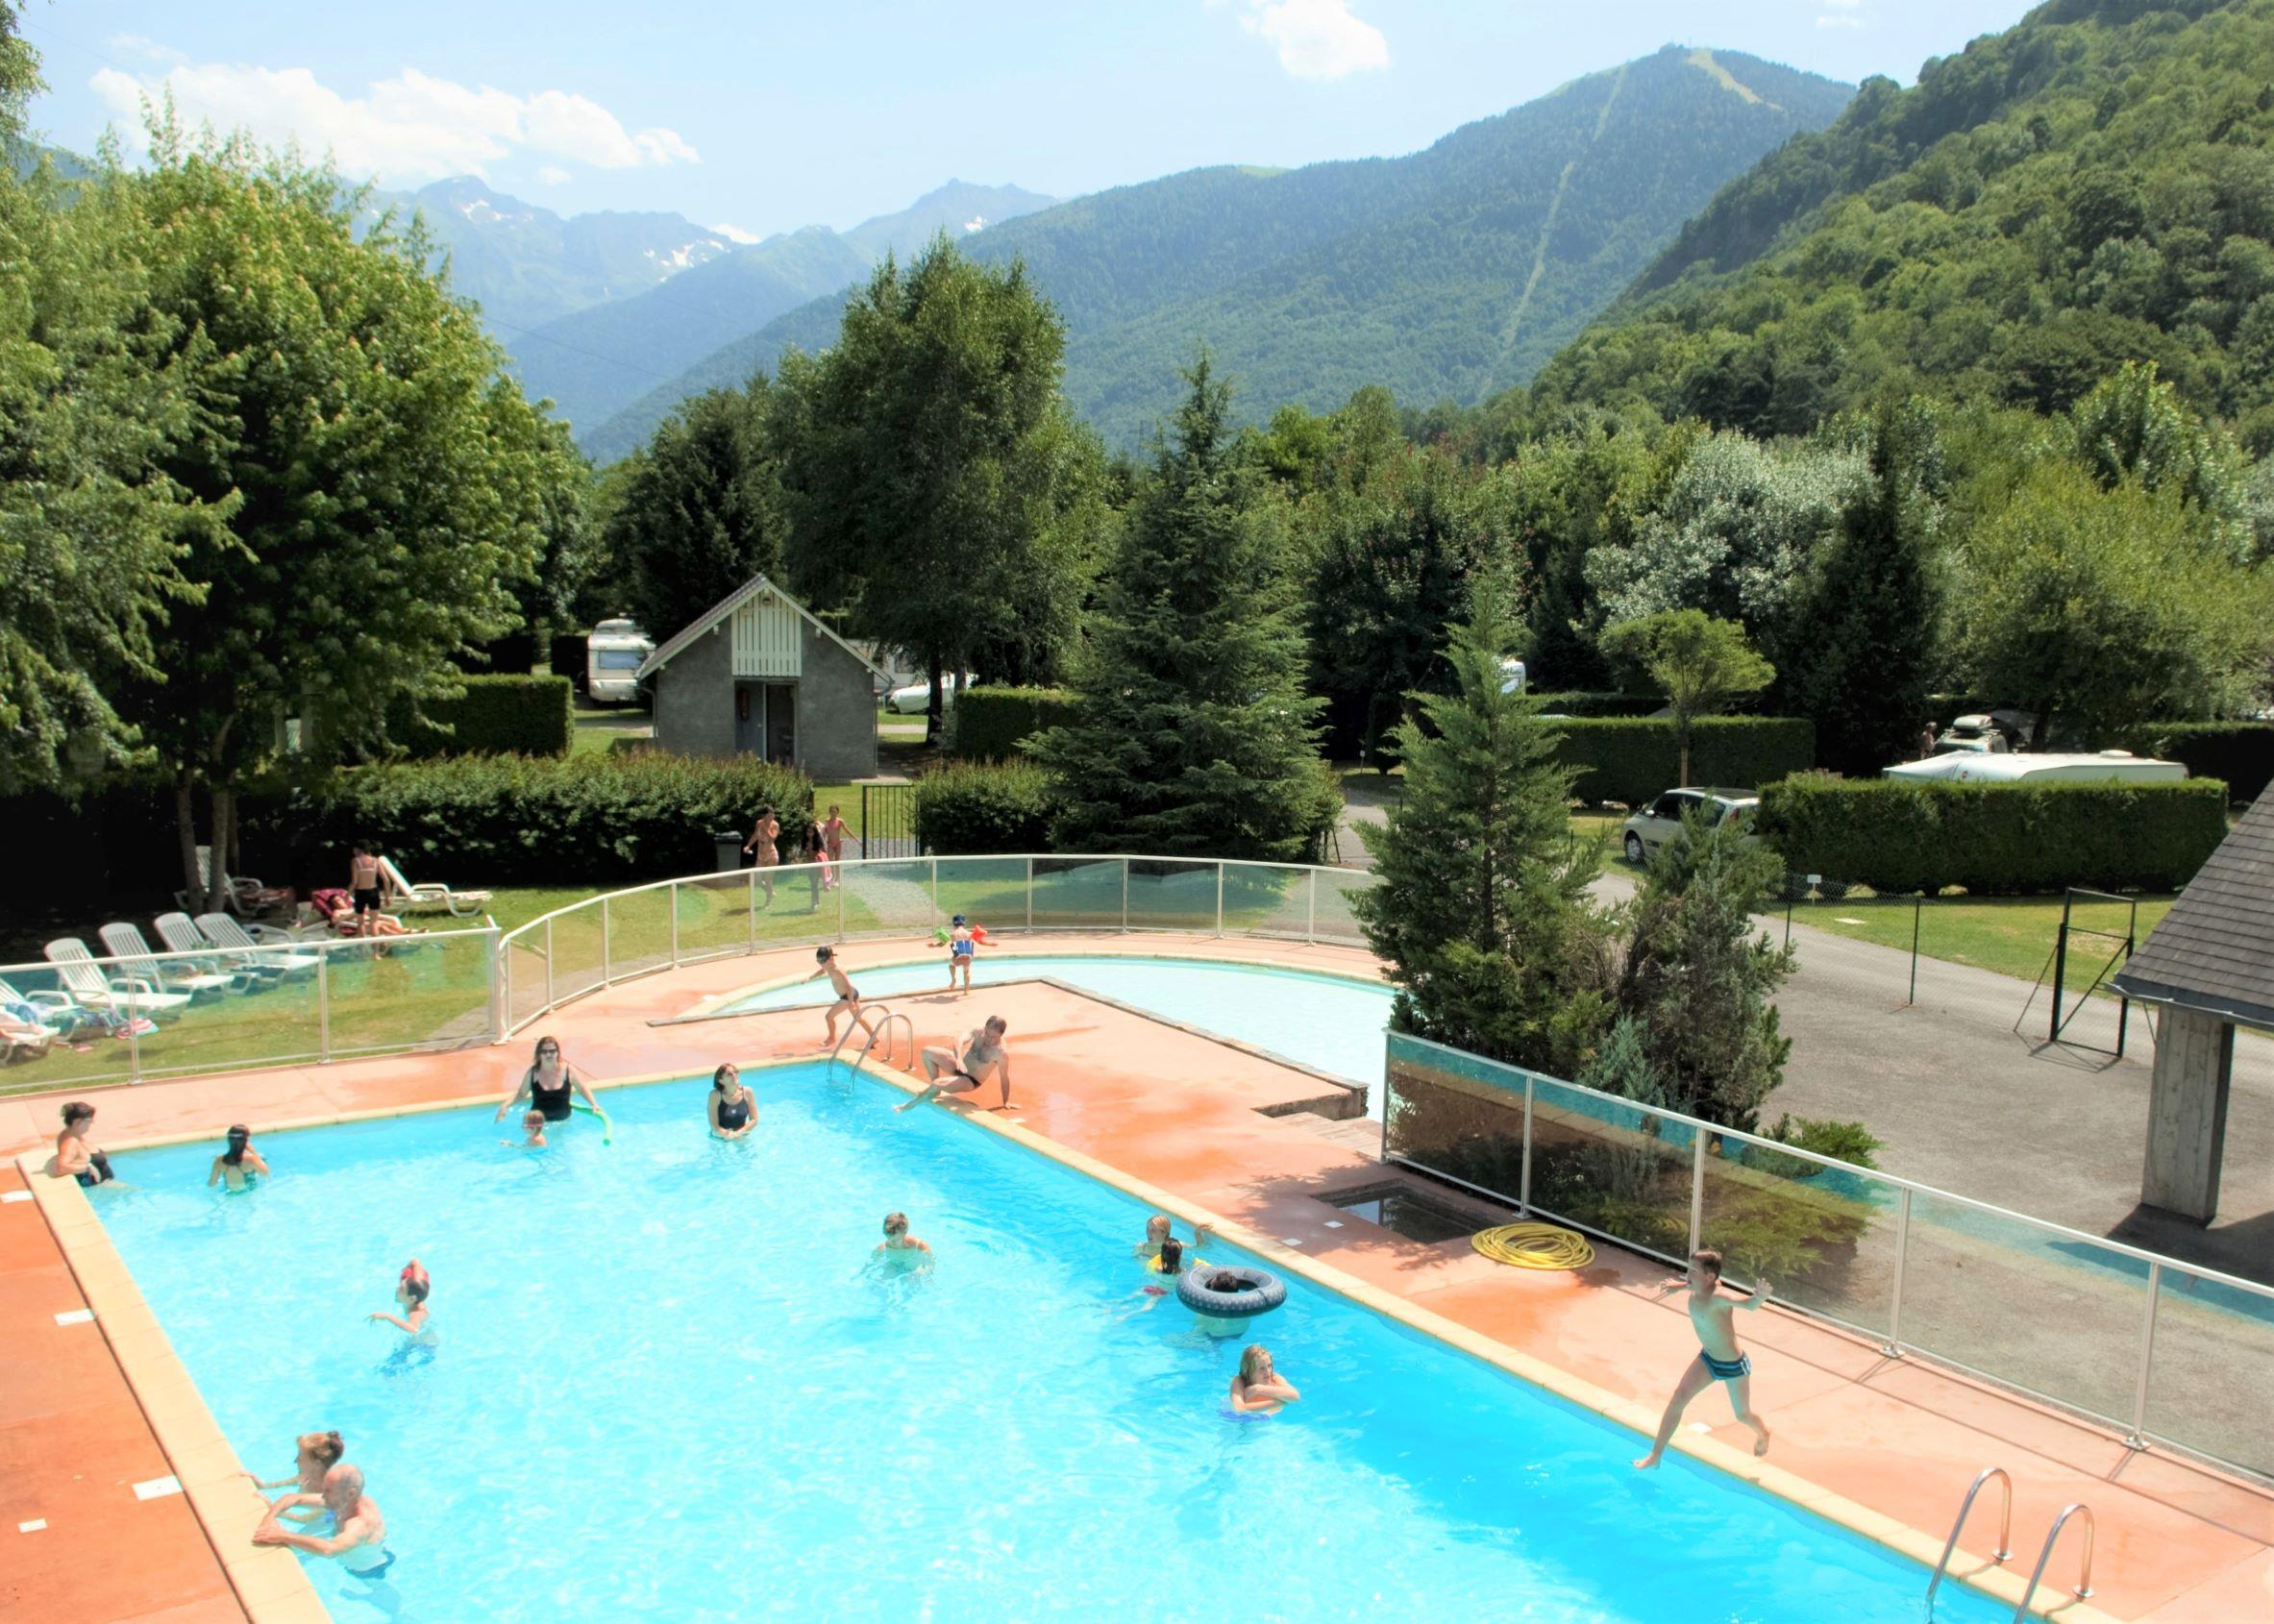 Beaches Camping Pradelongue - Bagneres De Luchon